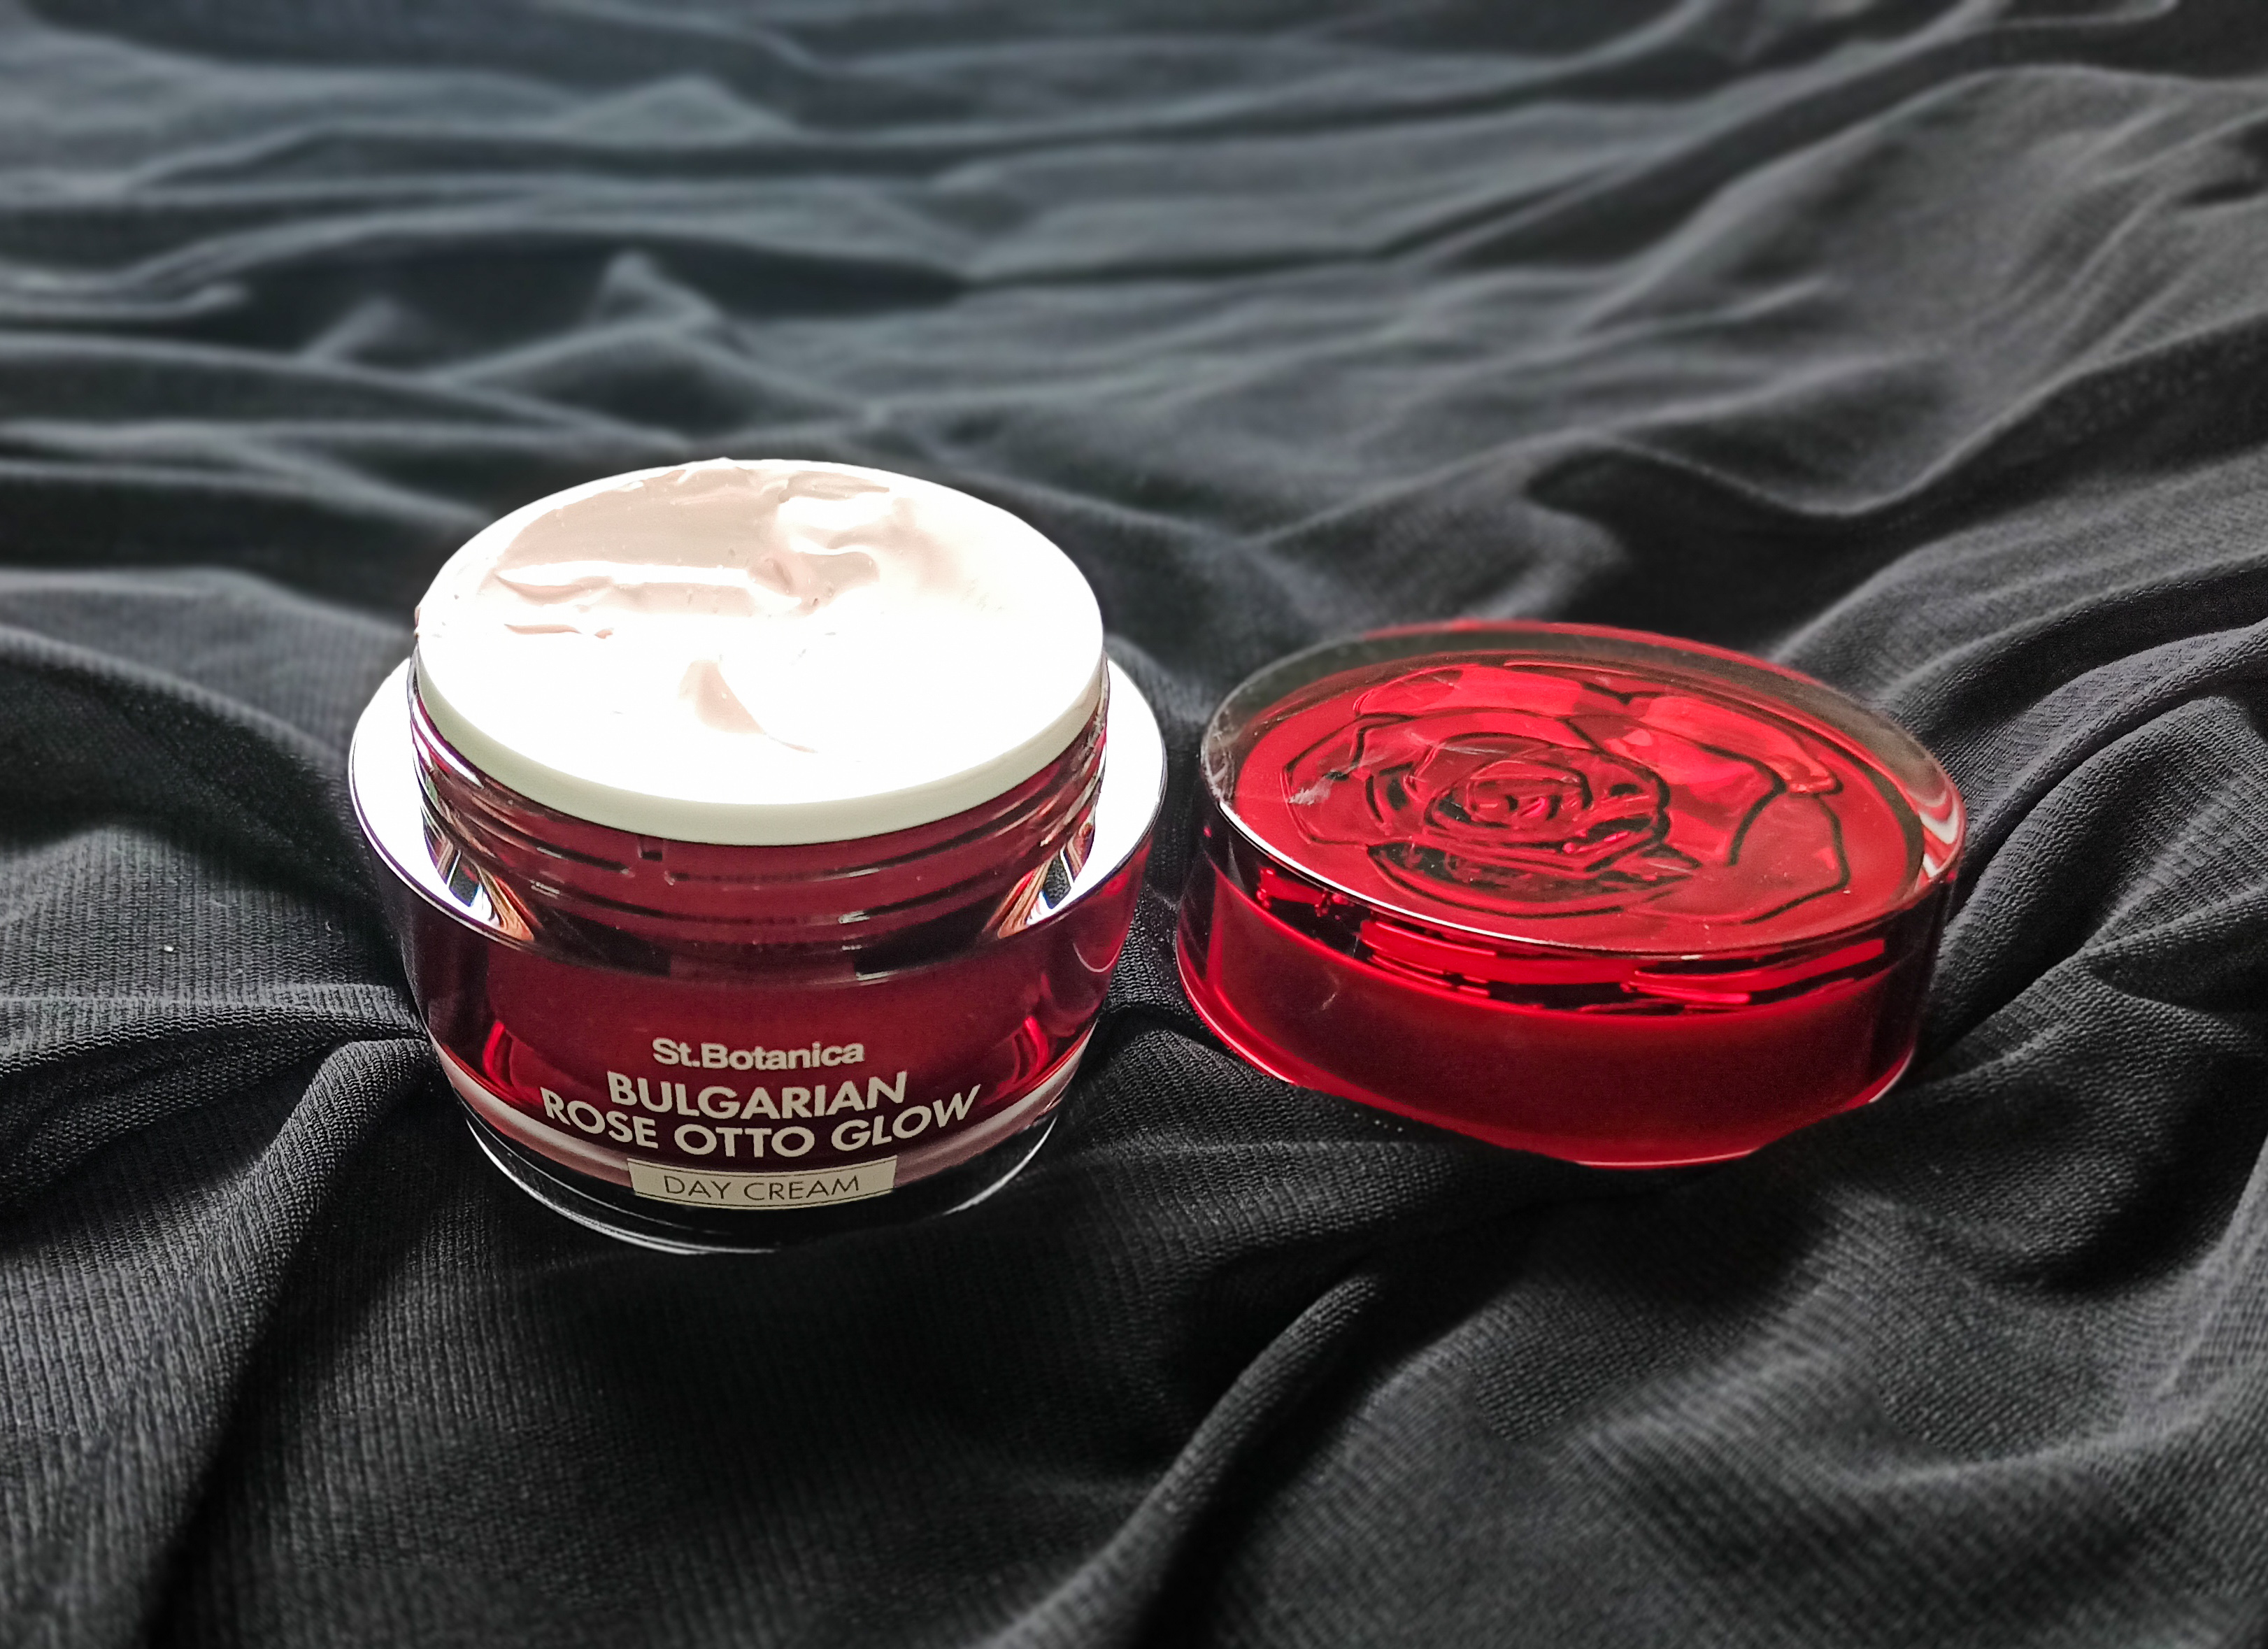 St.Botanica Bulgarian Rose Otto Glow Day Cream pic 2-my favorite skin care products-By iyermahima